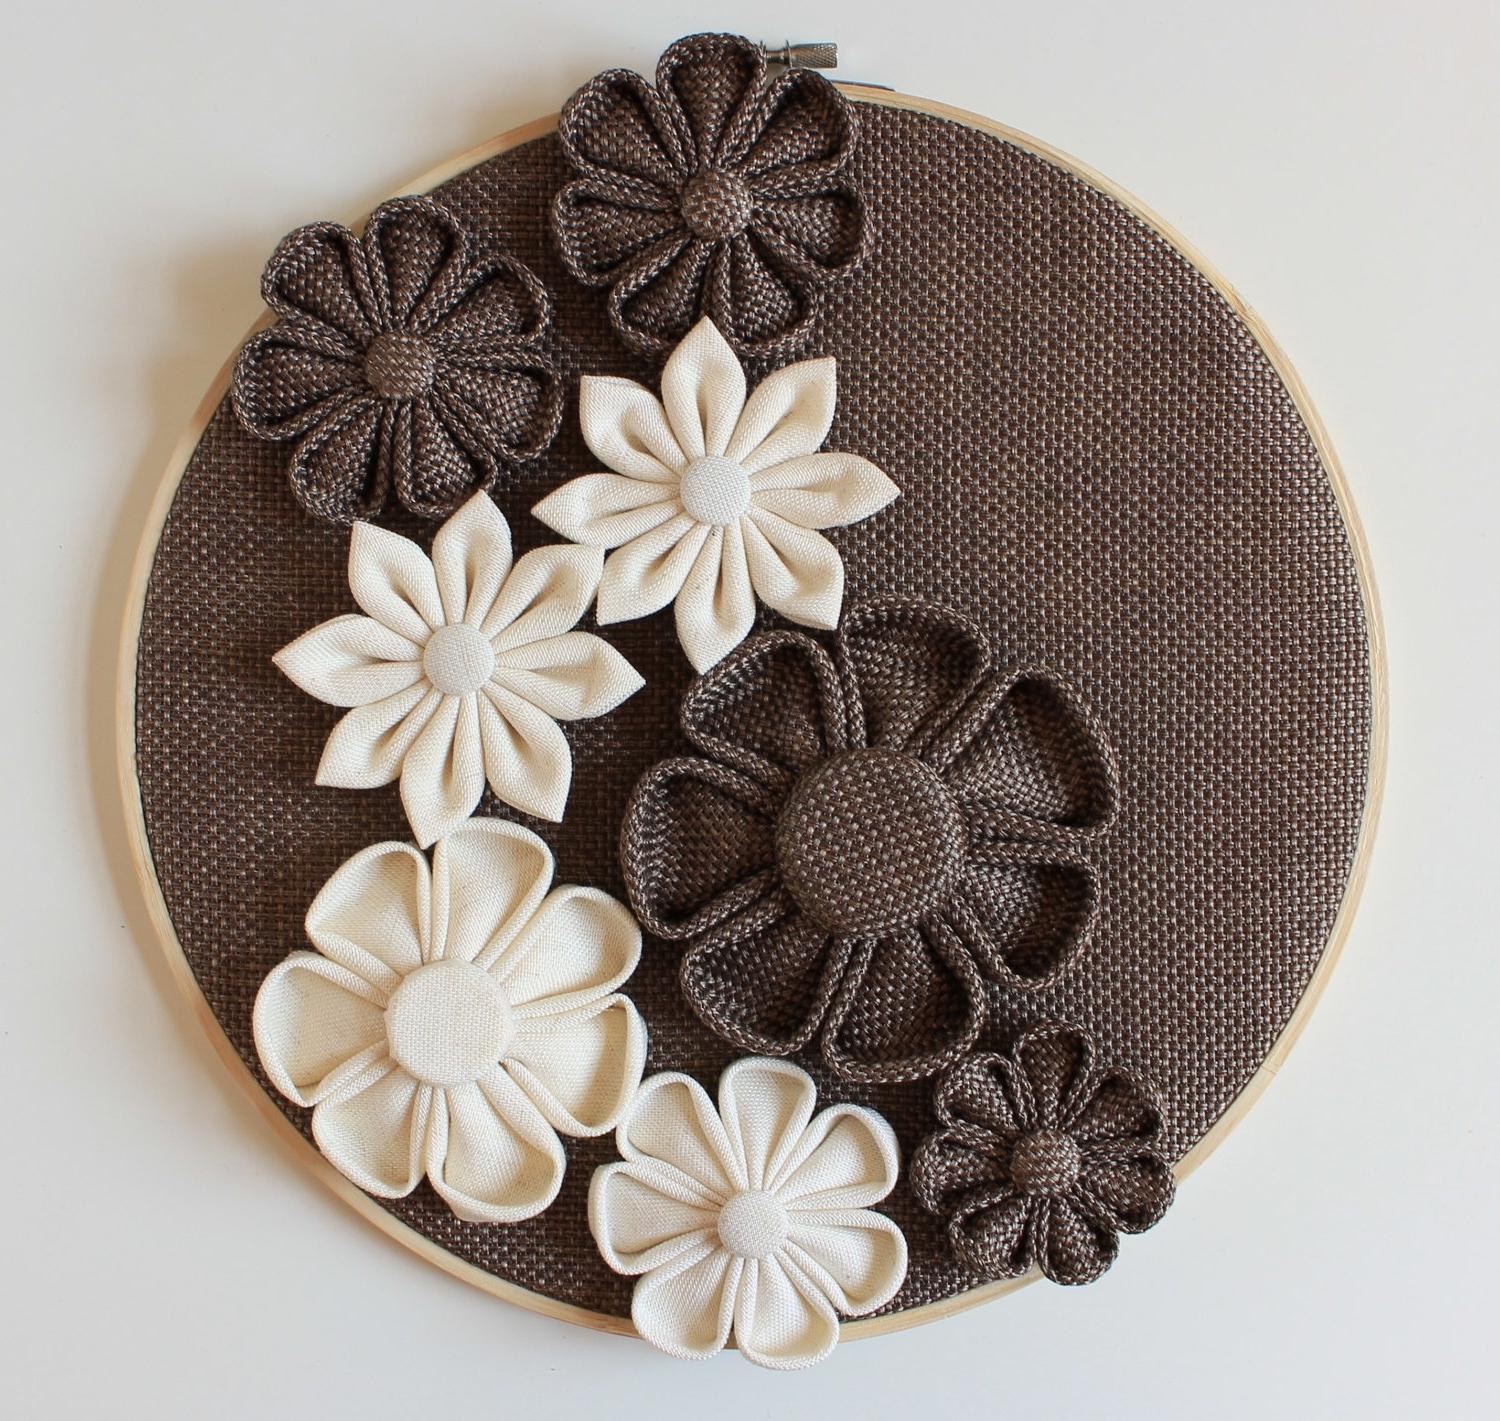 3D Wall Decor Wall Flowers Home Decor Wallneschdecoration Regarding Most Recent Floral Fabric Wall Art (Gallery 8 of 15)